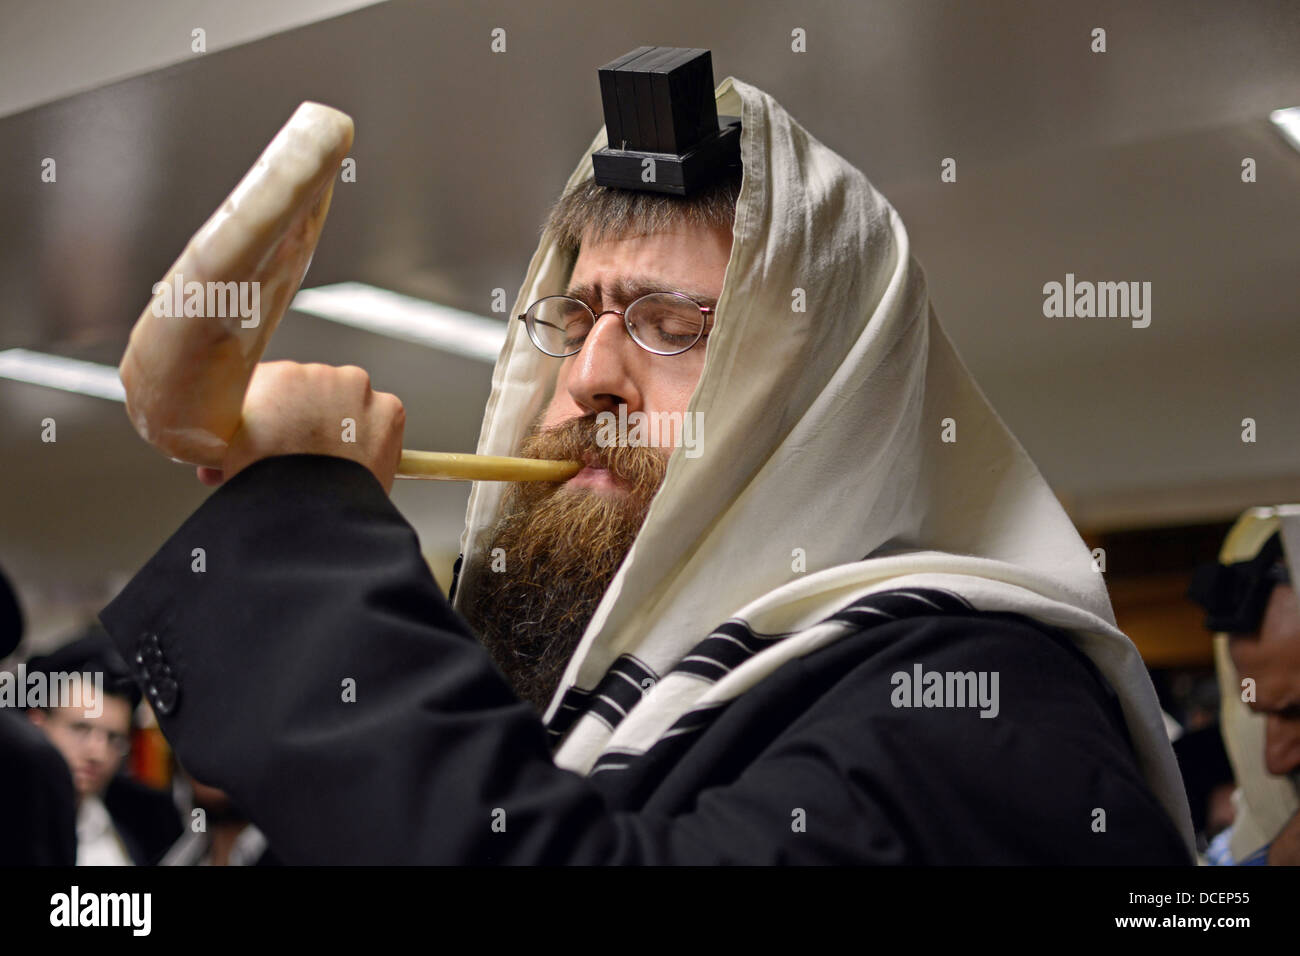 Religious Jewish man blows a shofar during services prior to New Year in Lubavitch headquarters in Crown Heights, - Stock Image